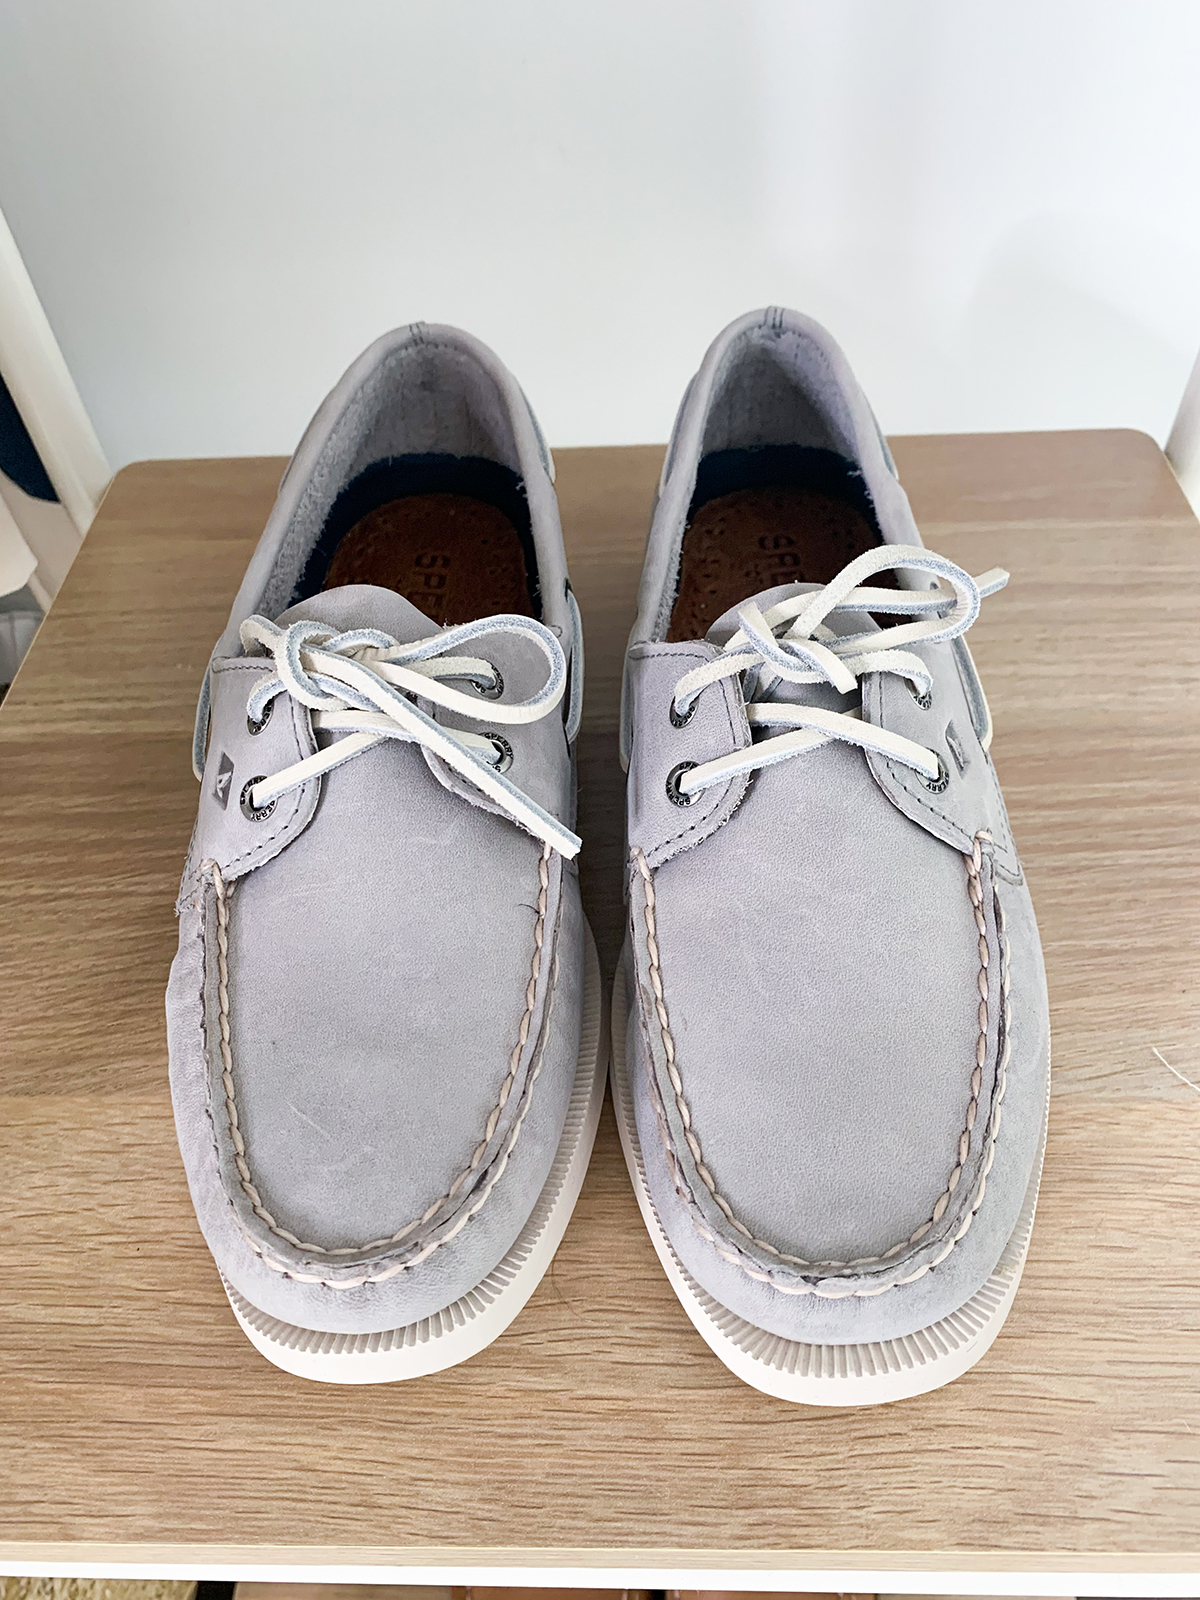 Sperry Women's Authentic Original Boat Shoe Gray